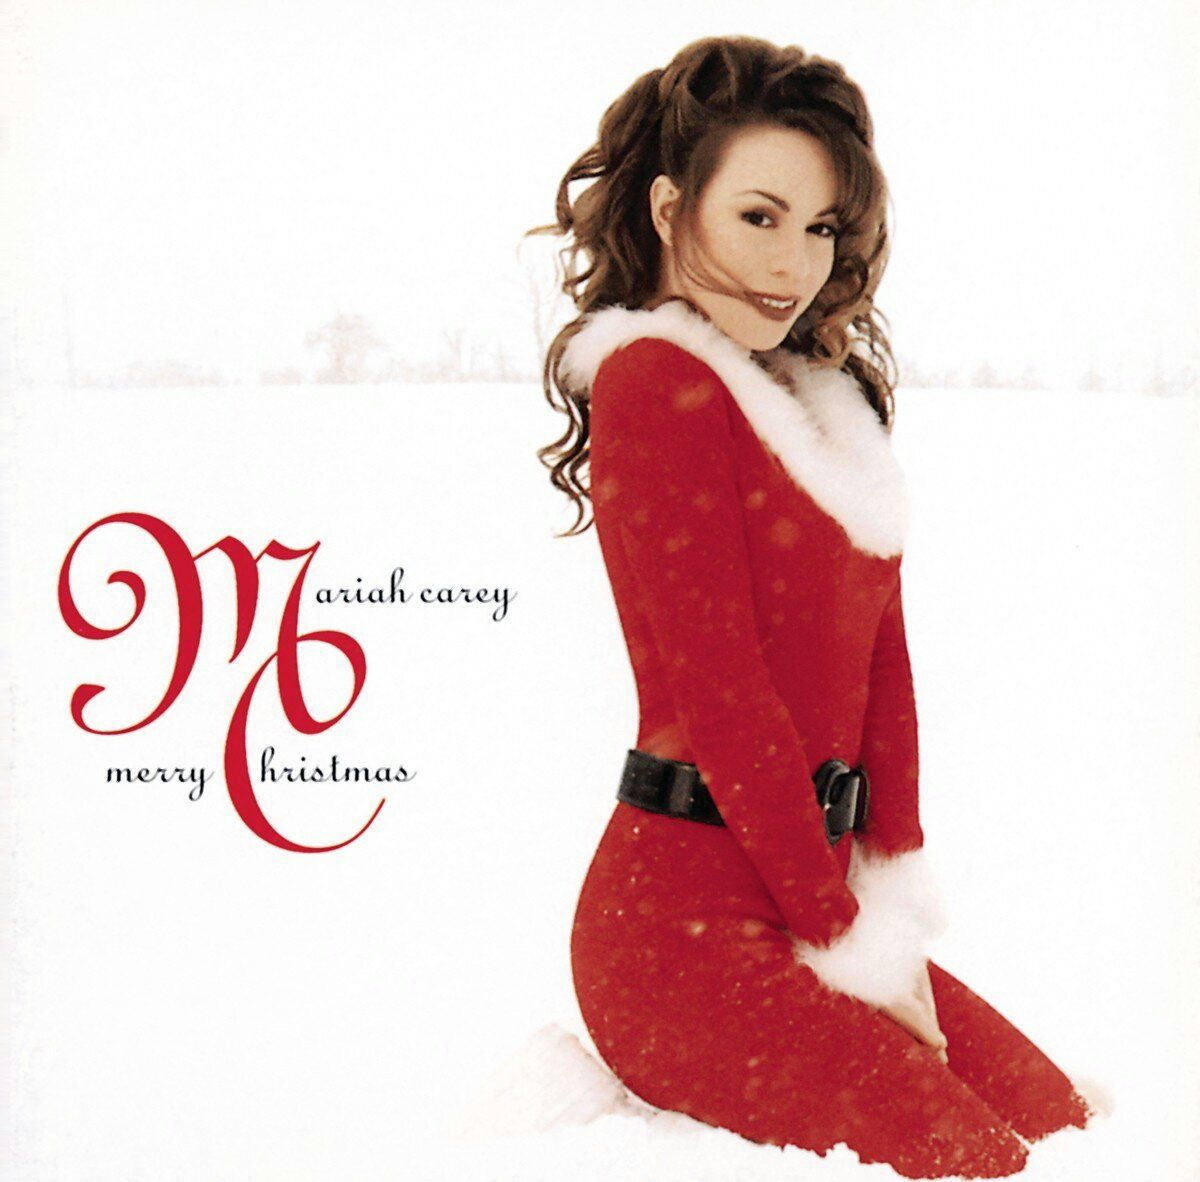 Merry Christmas Is The First Christmas Album And The Fourth Studio Album By Am Mariah Carey Christmas Album Mariah Carey Christmas Mariah Carey Merry Christmas